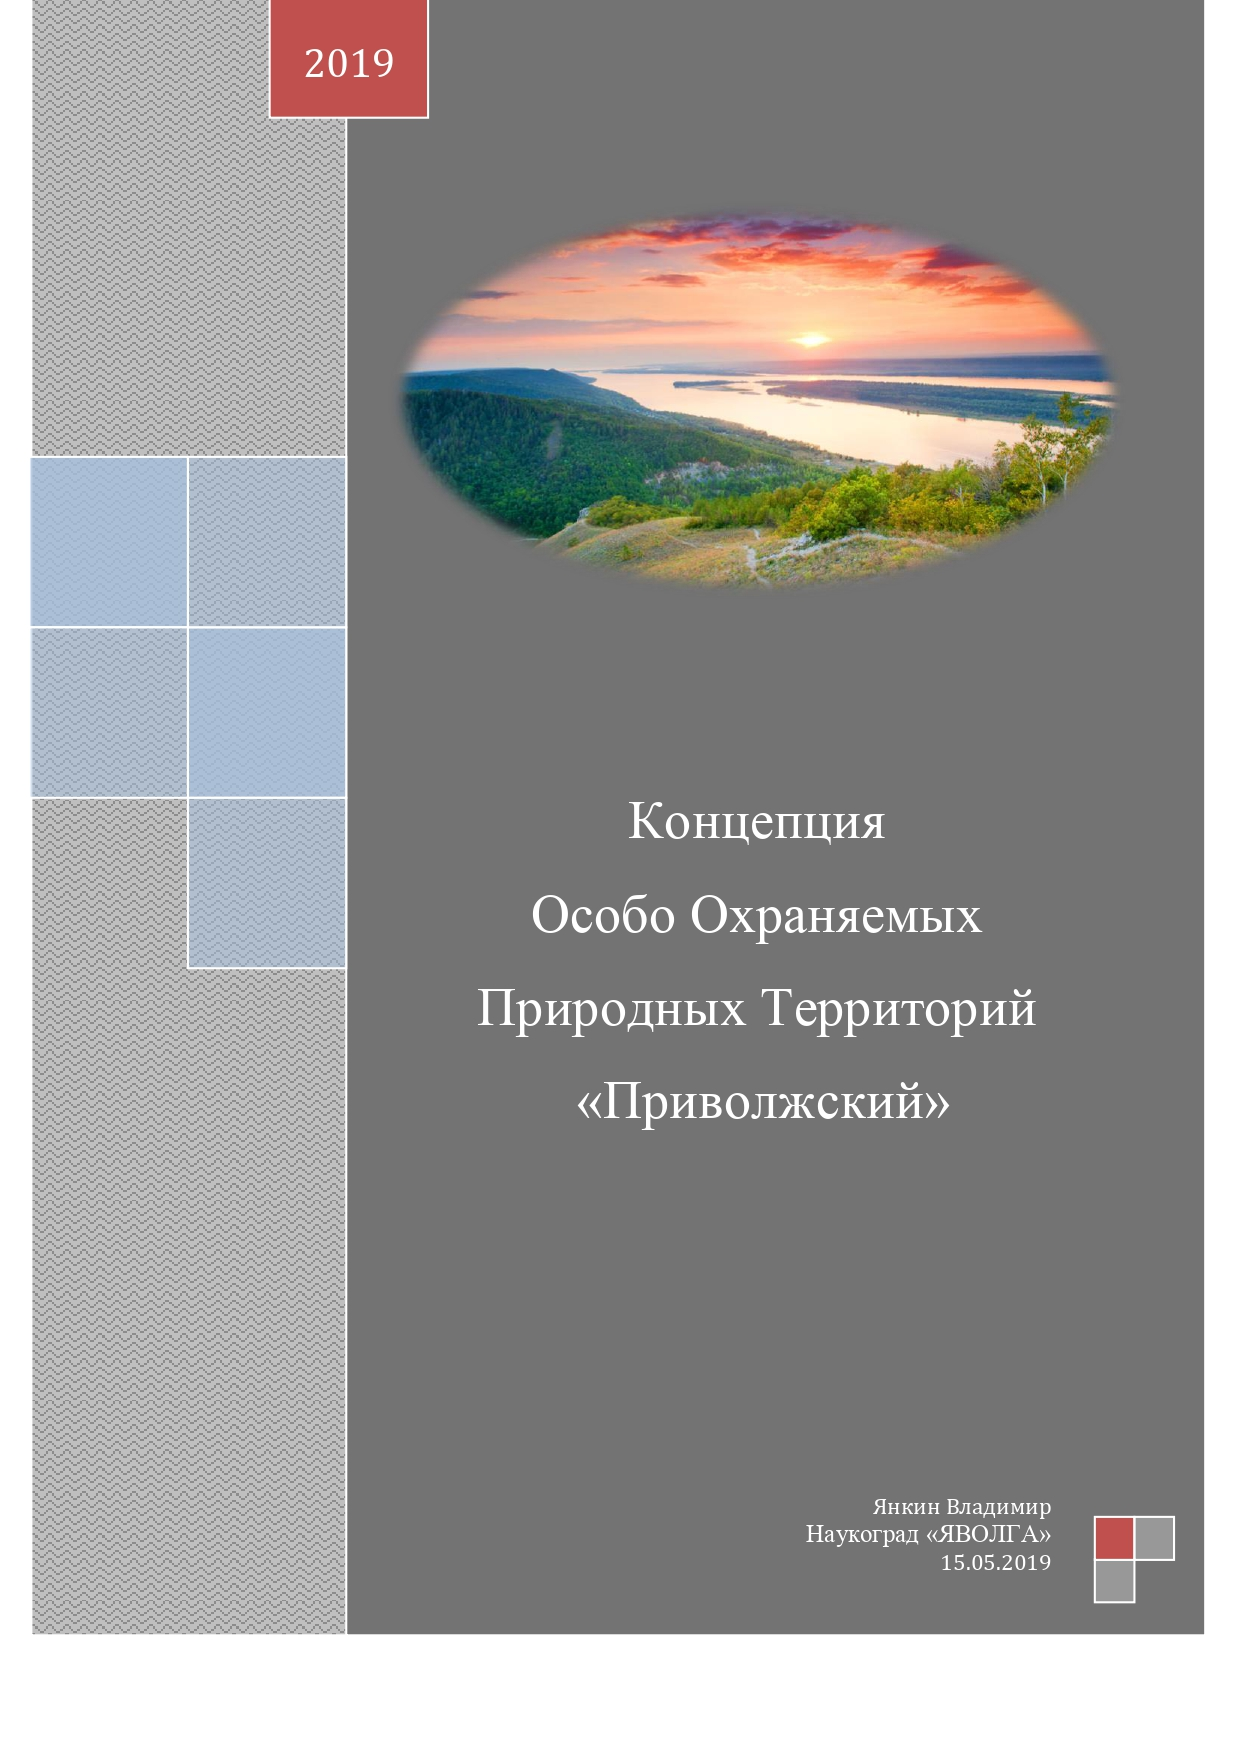 Ecopark appendix 3 Conception Концепция ООПТ